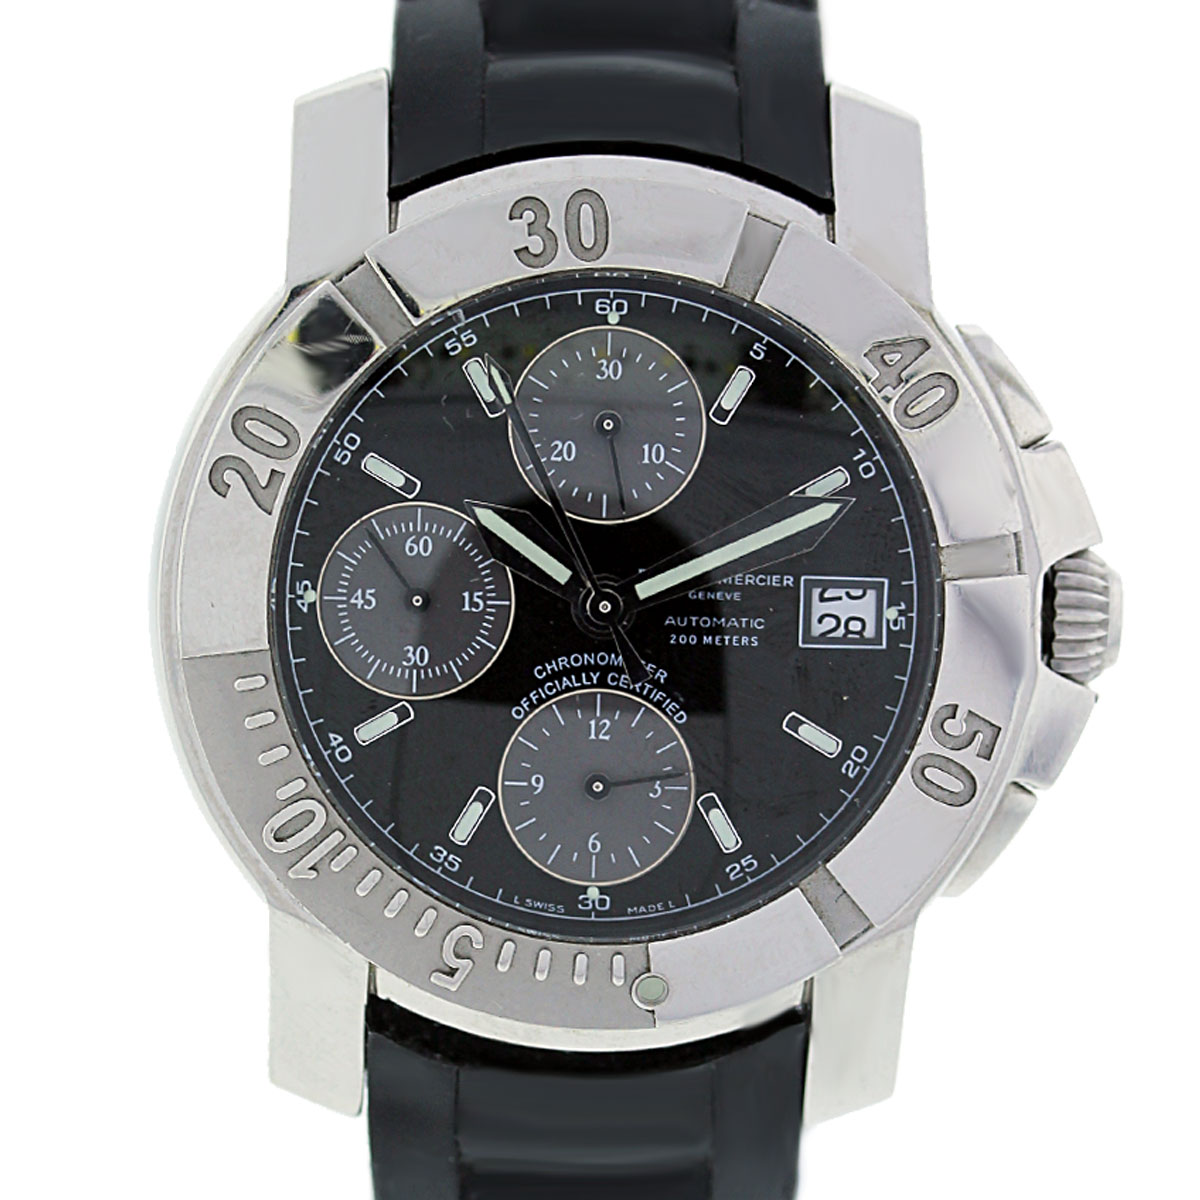 Baume & Mercier Mens watch